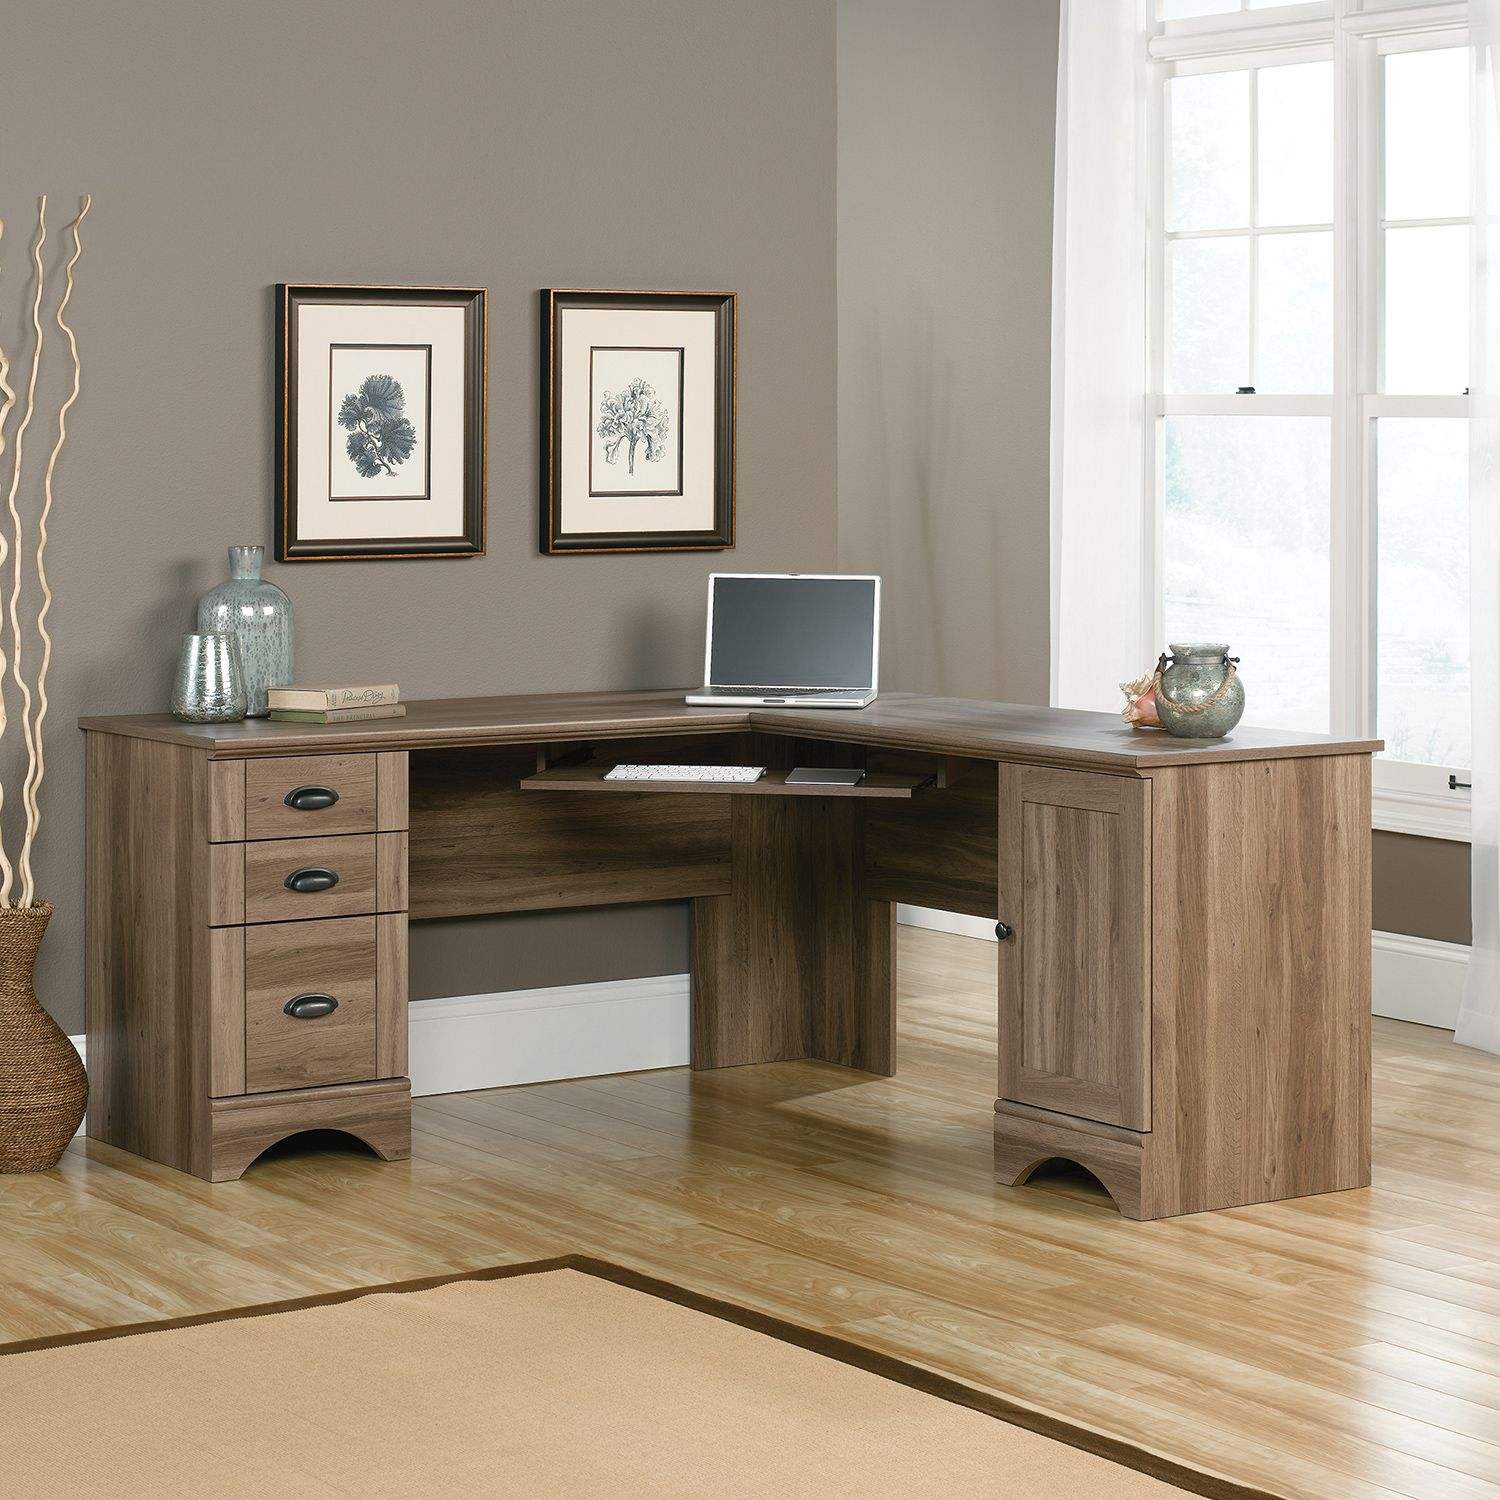 - Take It Easy In Your Home Office With This Harbor View Corner Desk